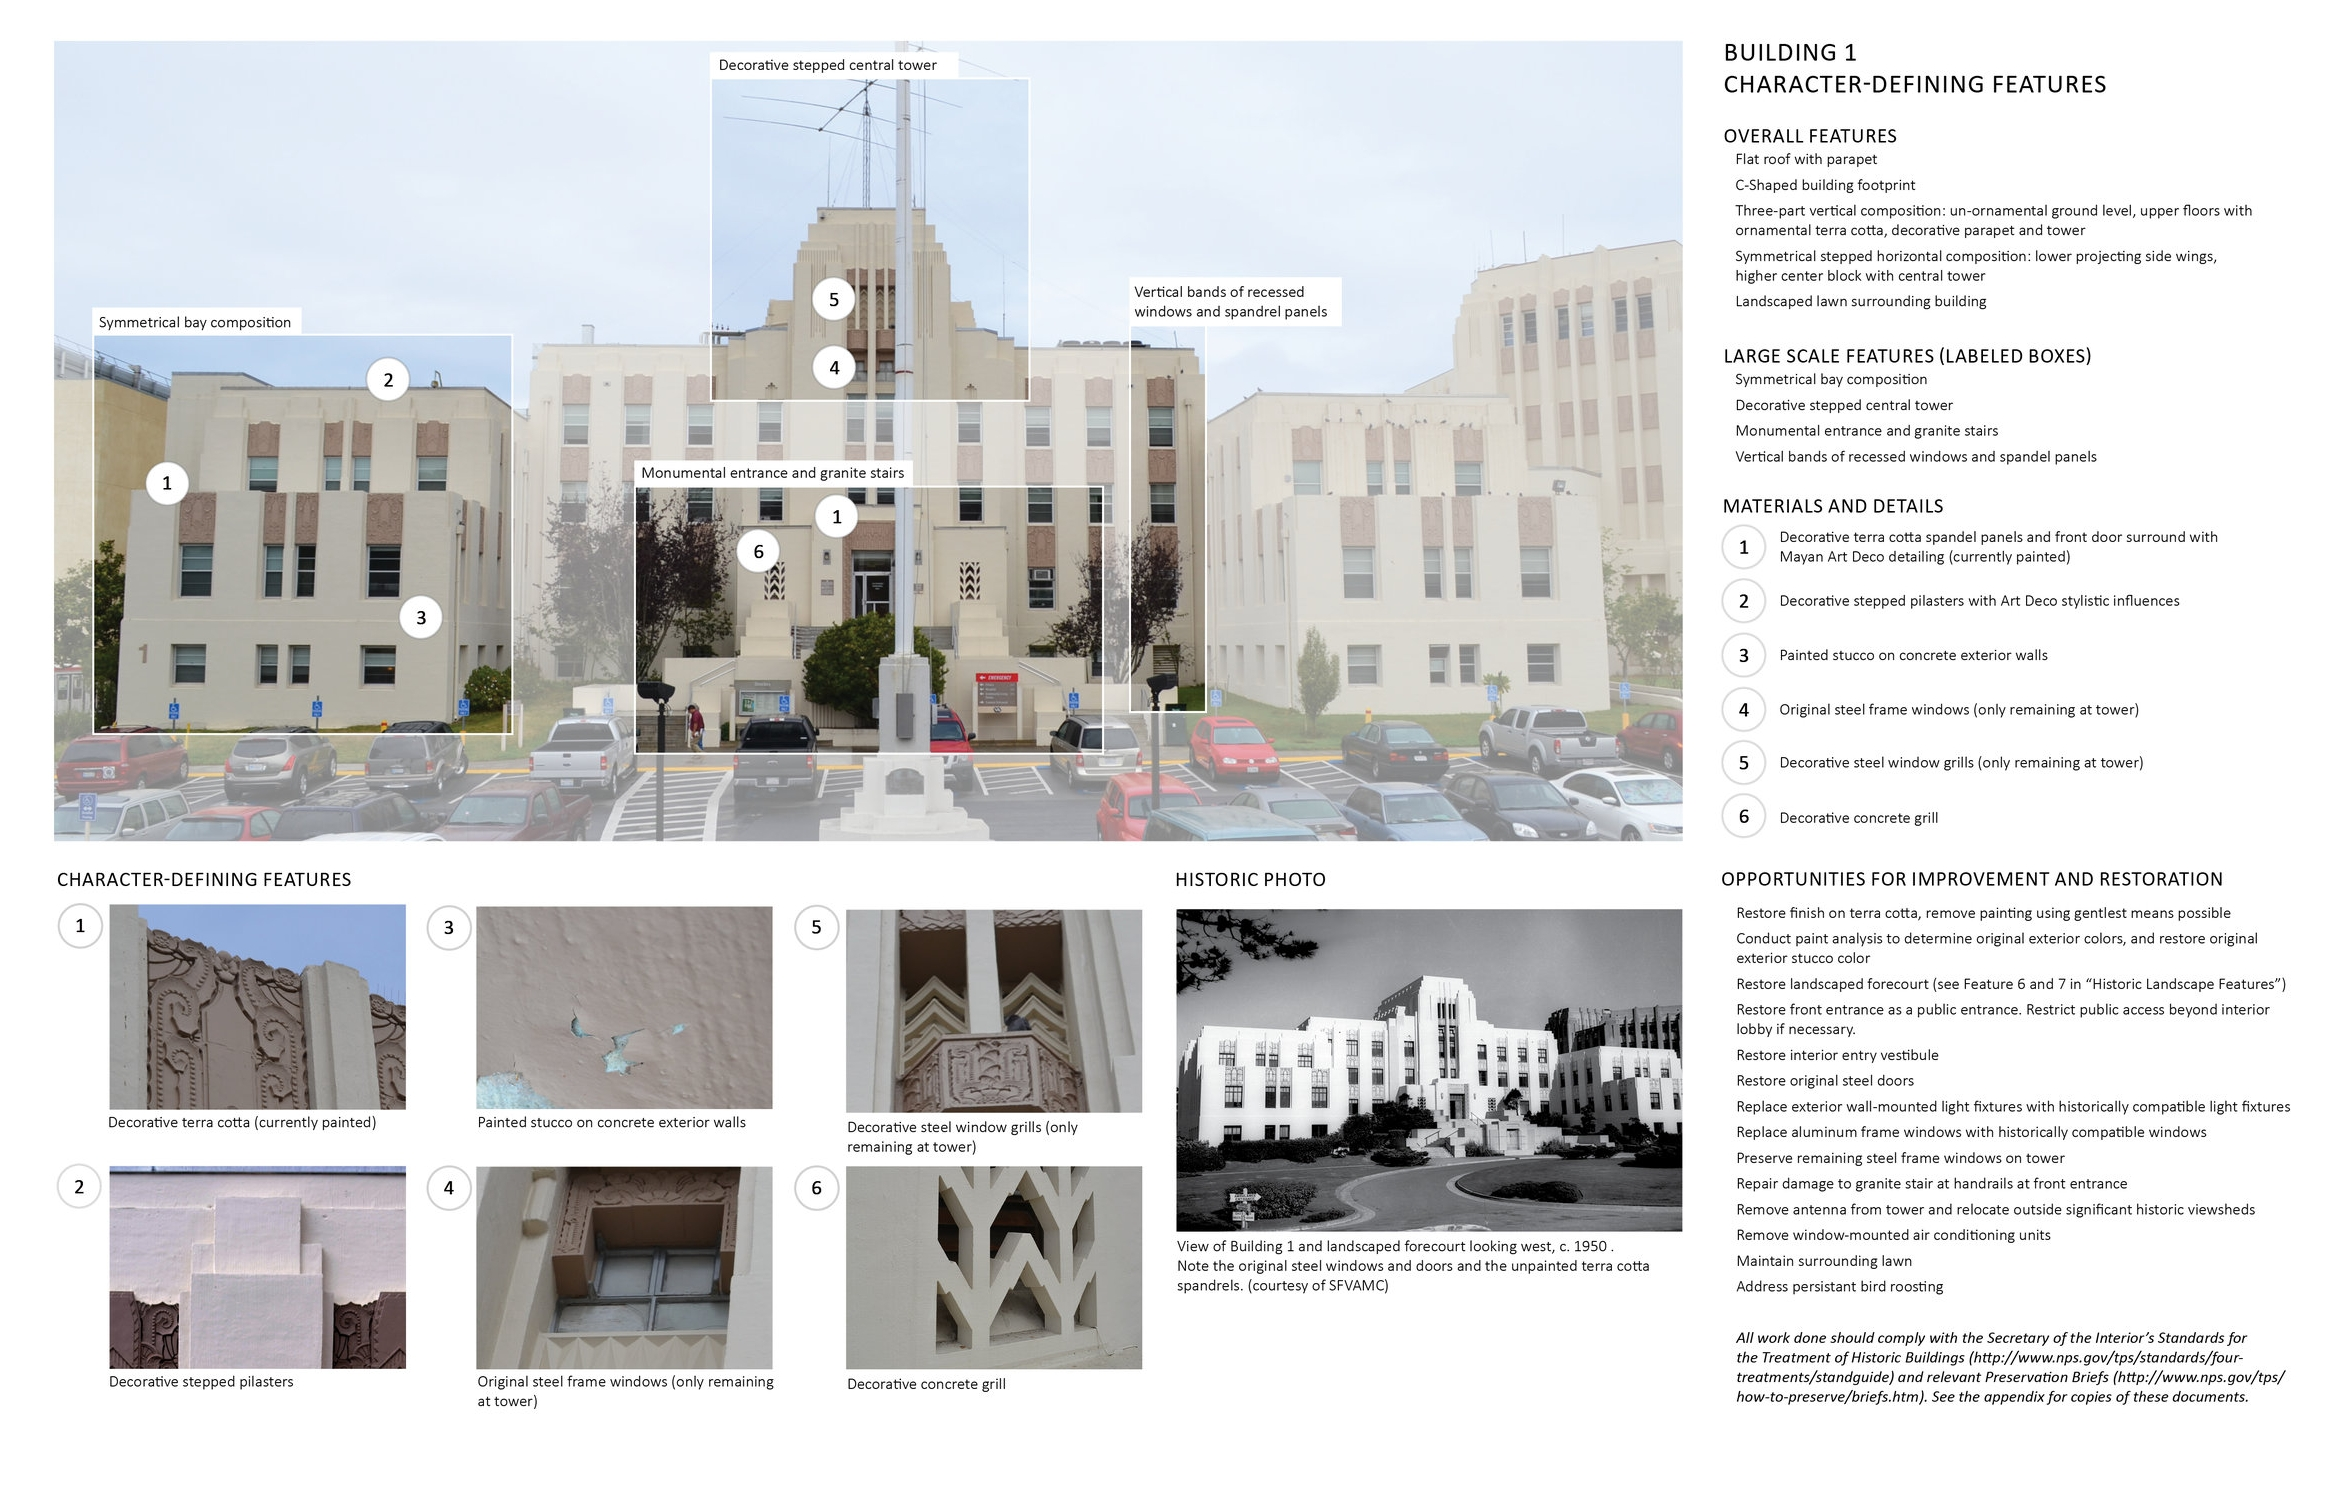 Design guidelines for San Francisco VA Medical Center